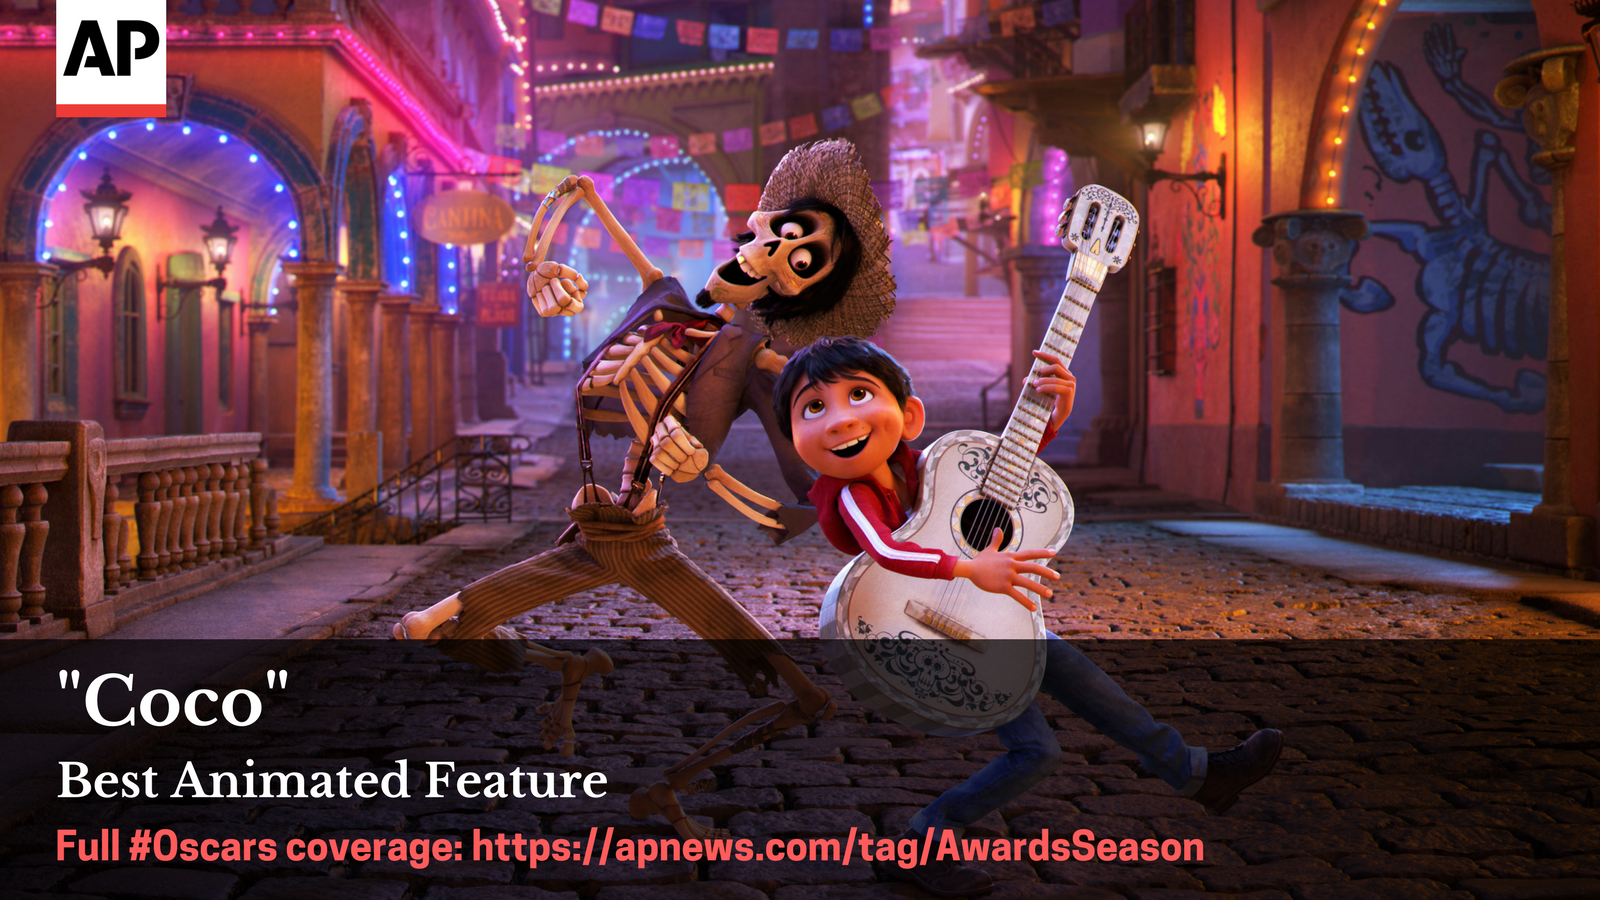 """""""Coco"""" wins best animated feature #Oscars  Full awards season coverage: https://t.co/WvcGBK2hrC https://t.co/BAJqBRSF4w"""